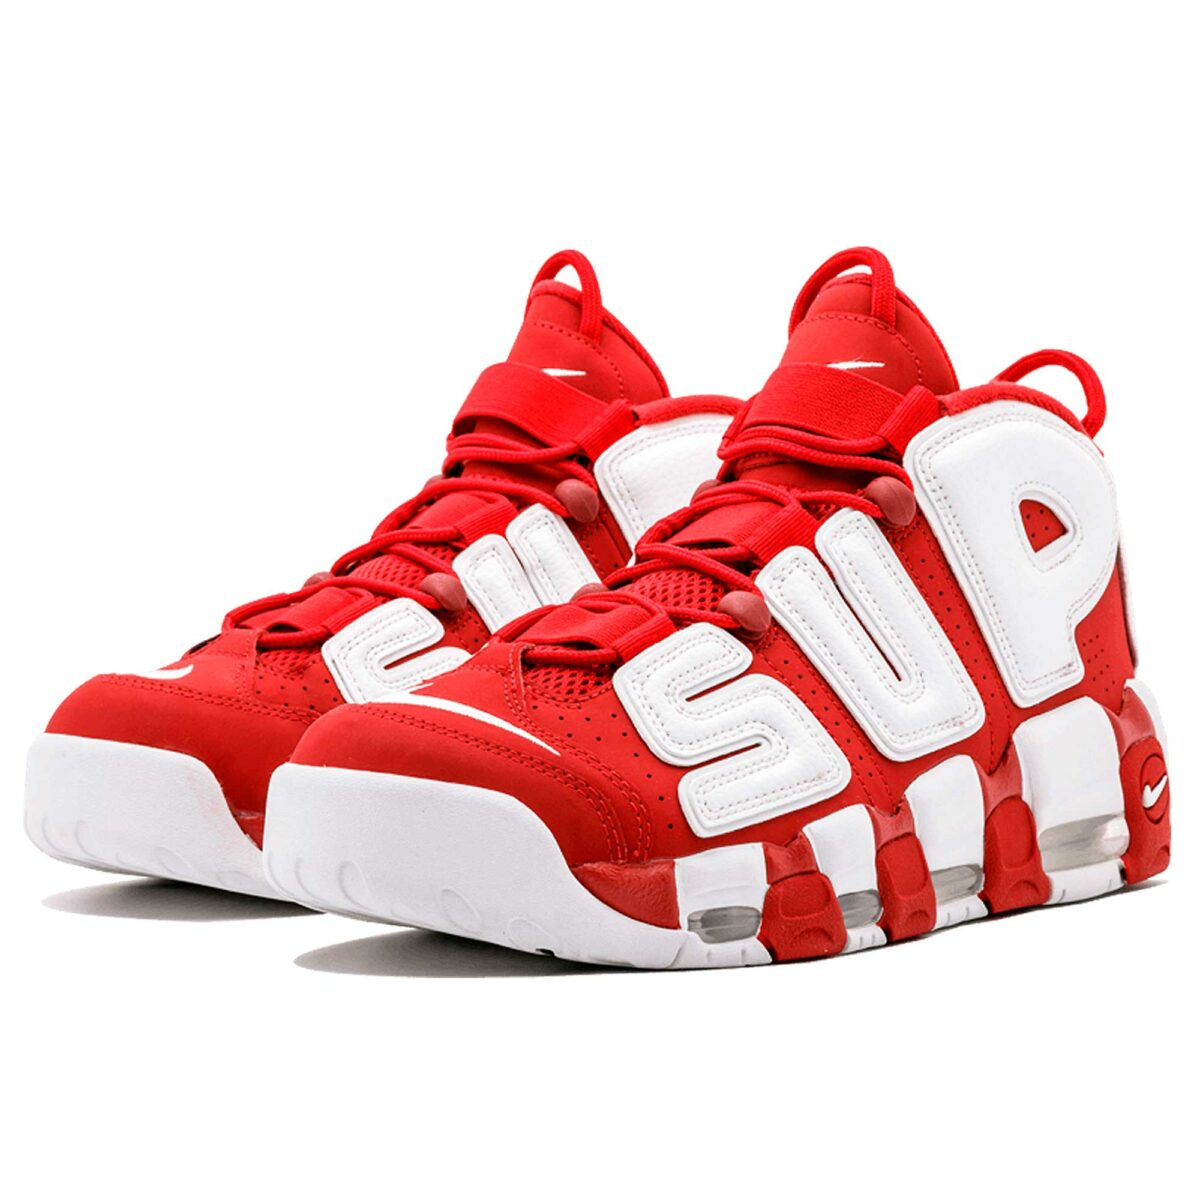 nike air more uptempo supreme varsity red white 902290_600 купить